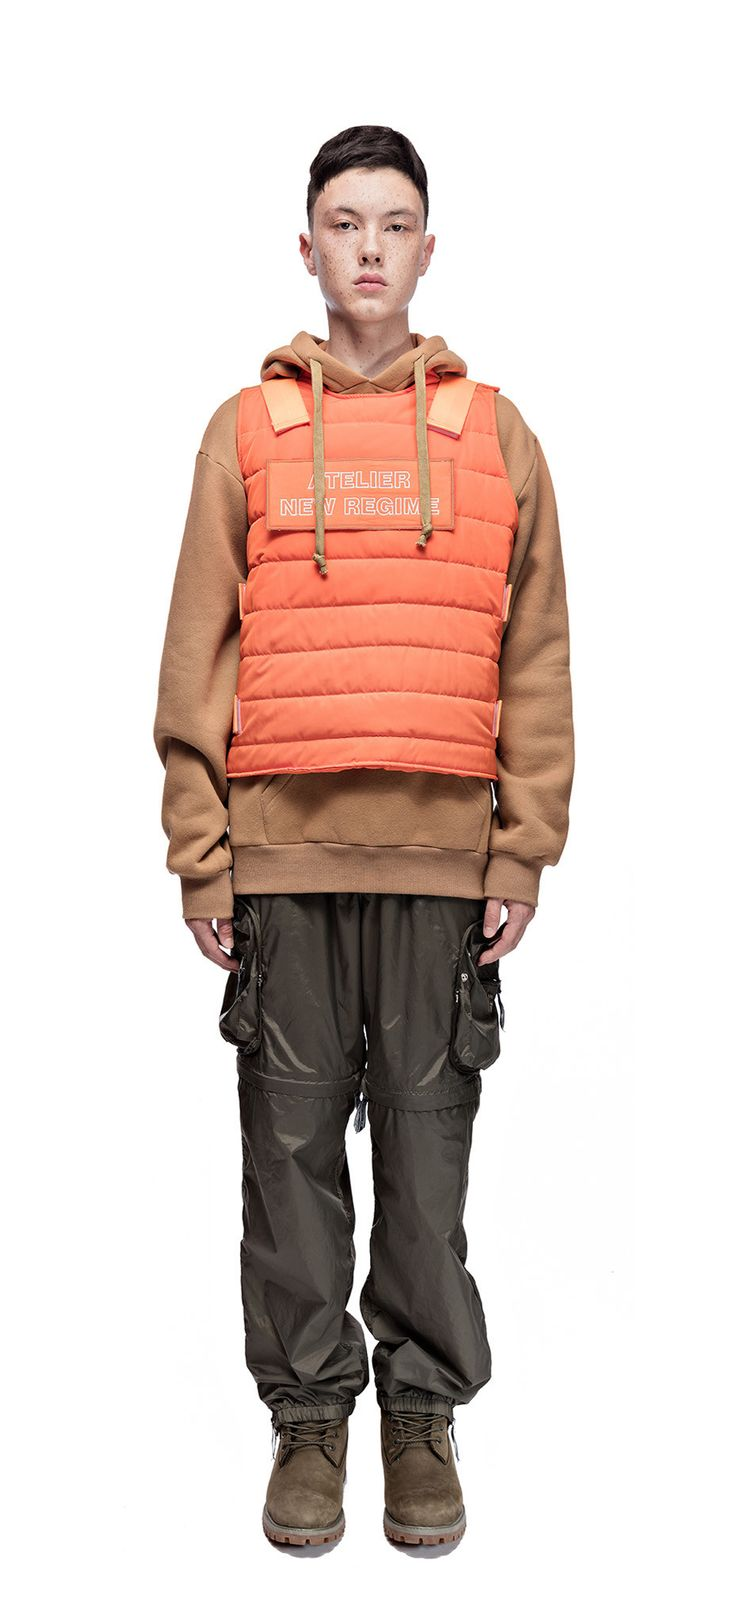 Atelier New Regime sleeveless quilted tactical style vest in orange. Features detachable velcro patch with white logo embroidery at front, and velcro straps at body. #ateliernewregime #newregime #FW16